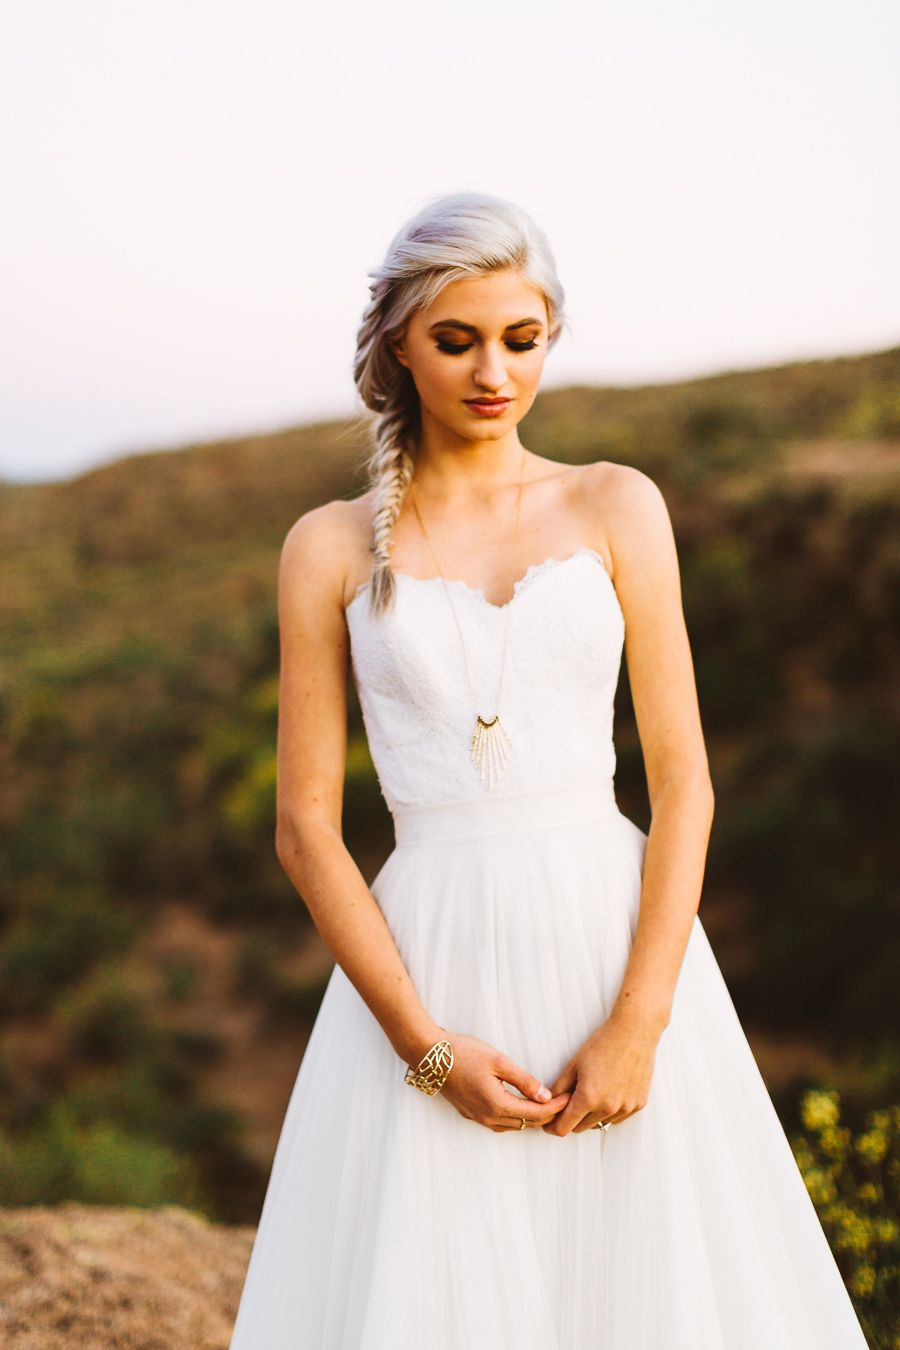 Sand + Succulents Shoot with Claire Hudson   Bridal gowns and Weddings